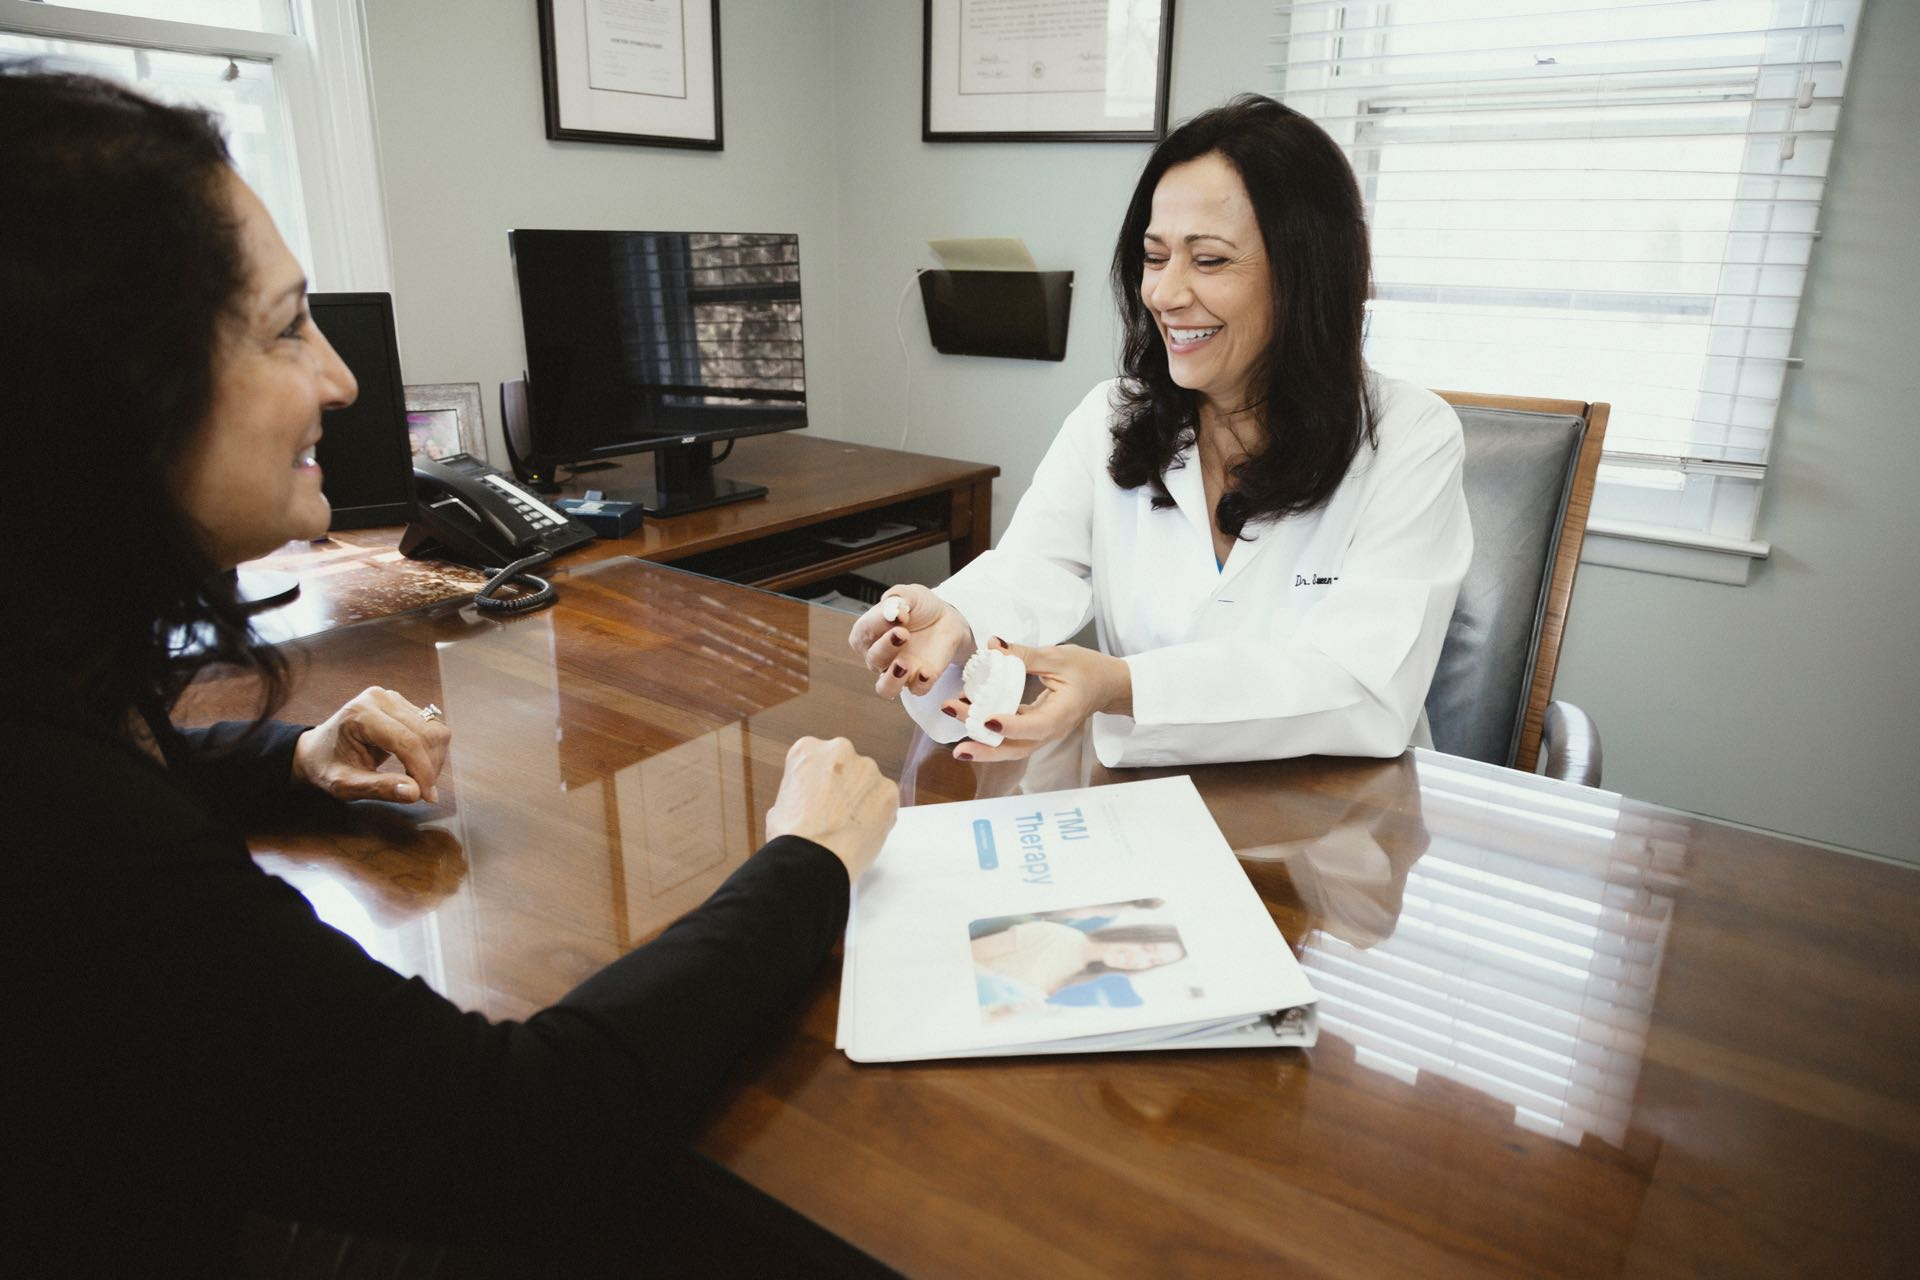 Photo of Dr. Sweeney-Fonesca showing a dental model to a patient